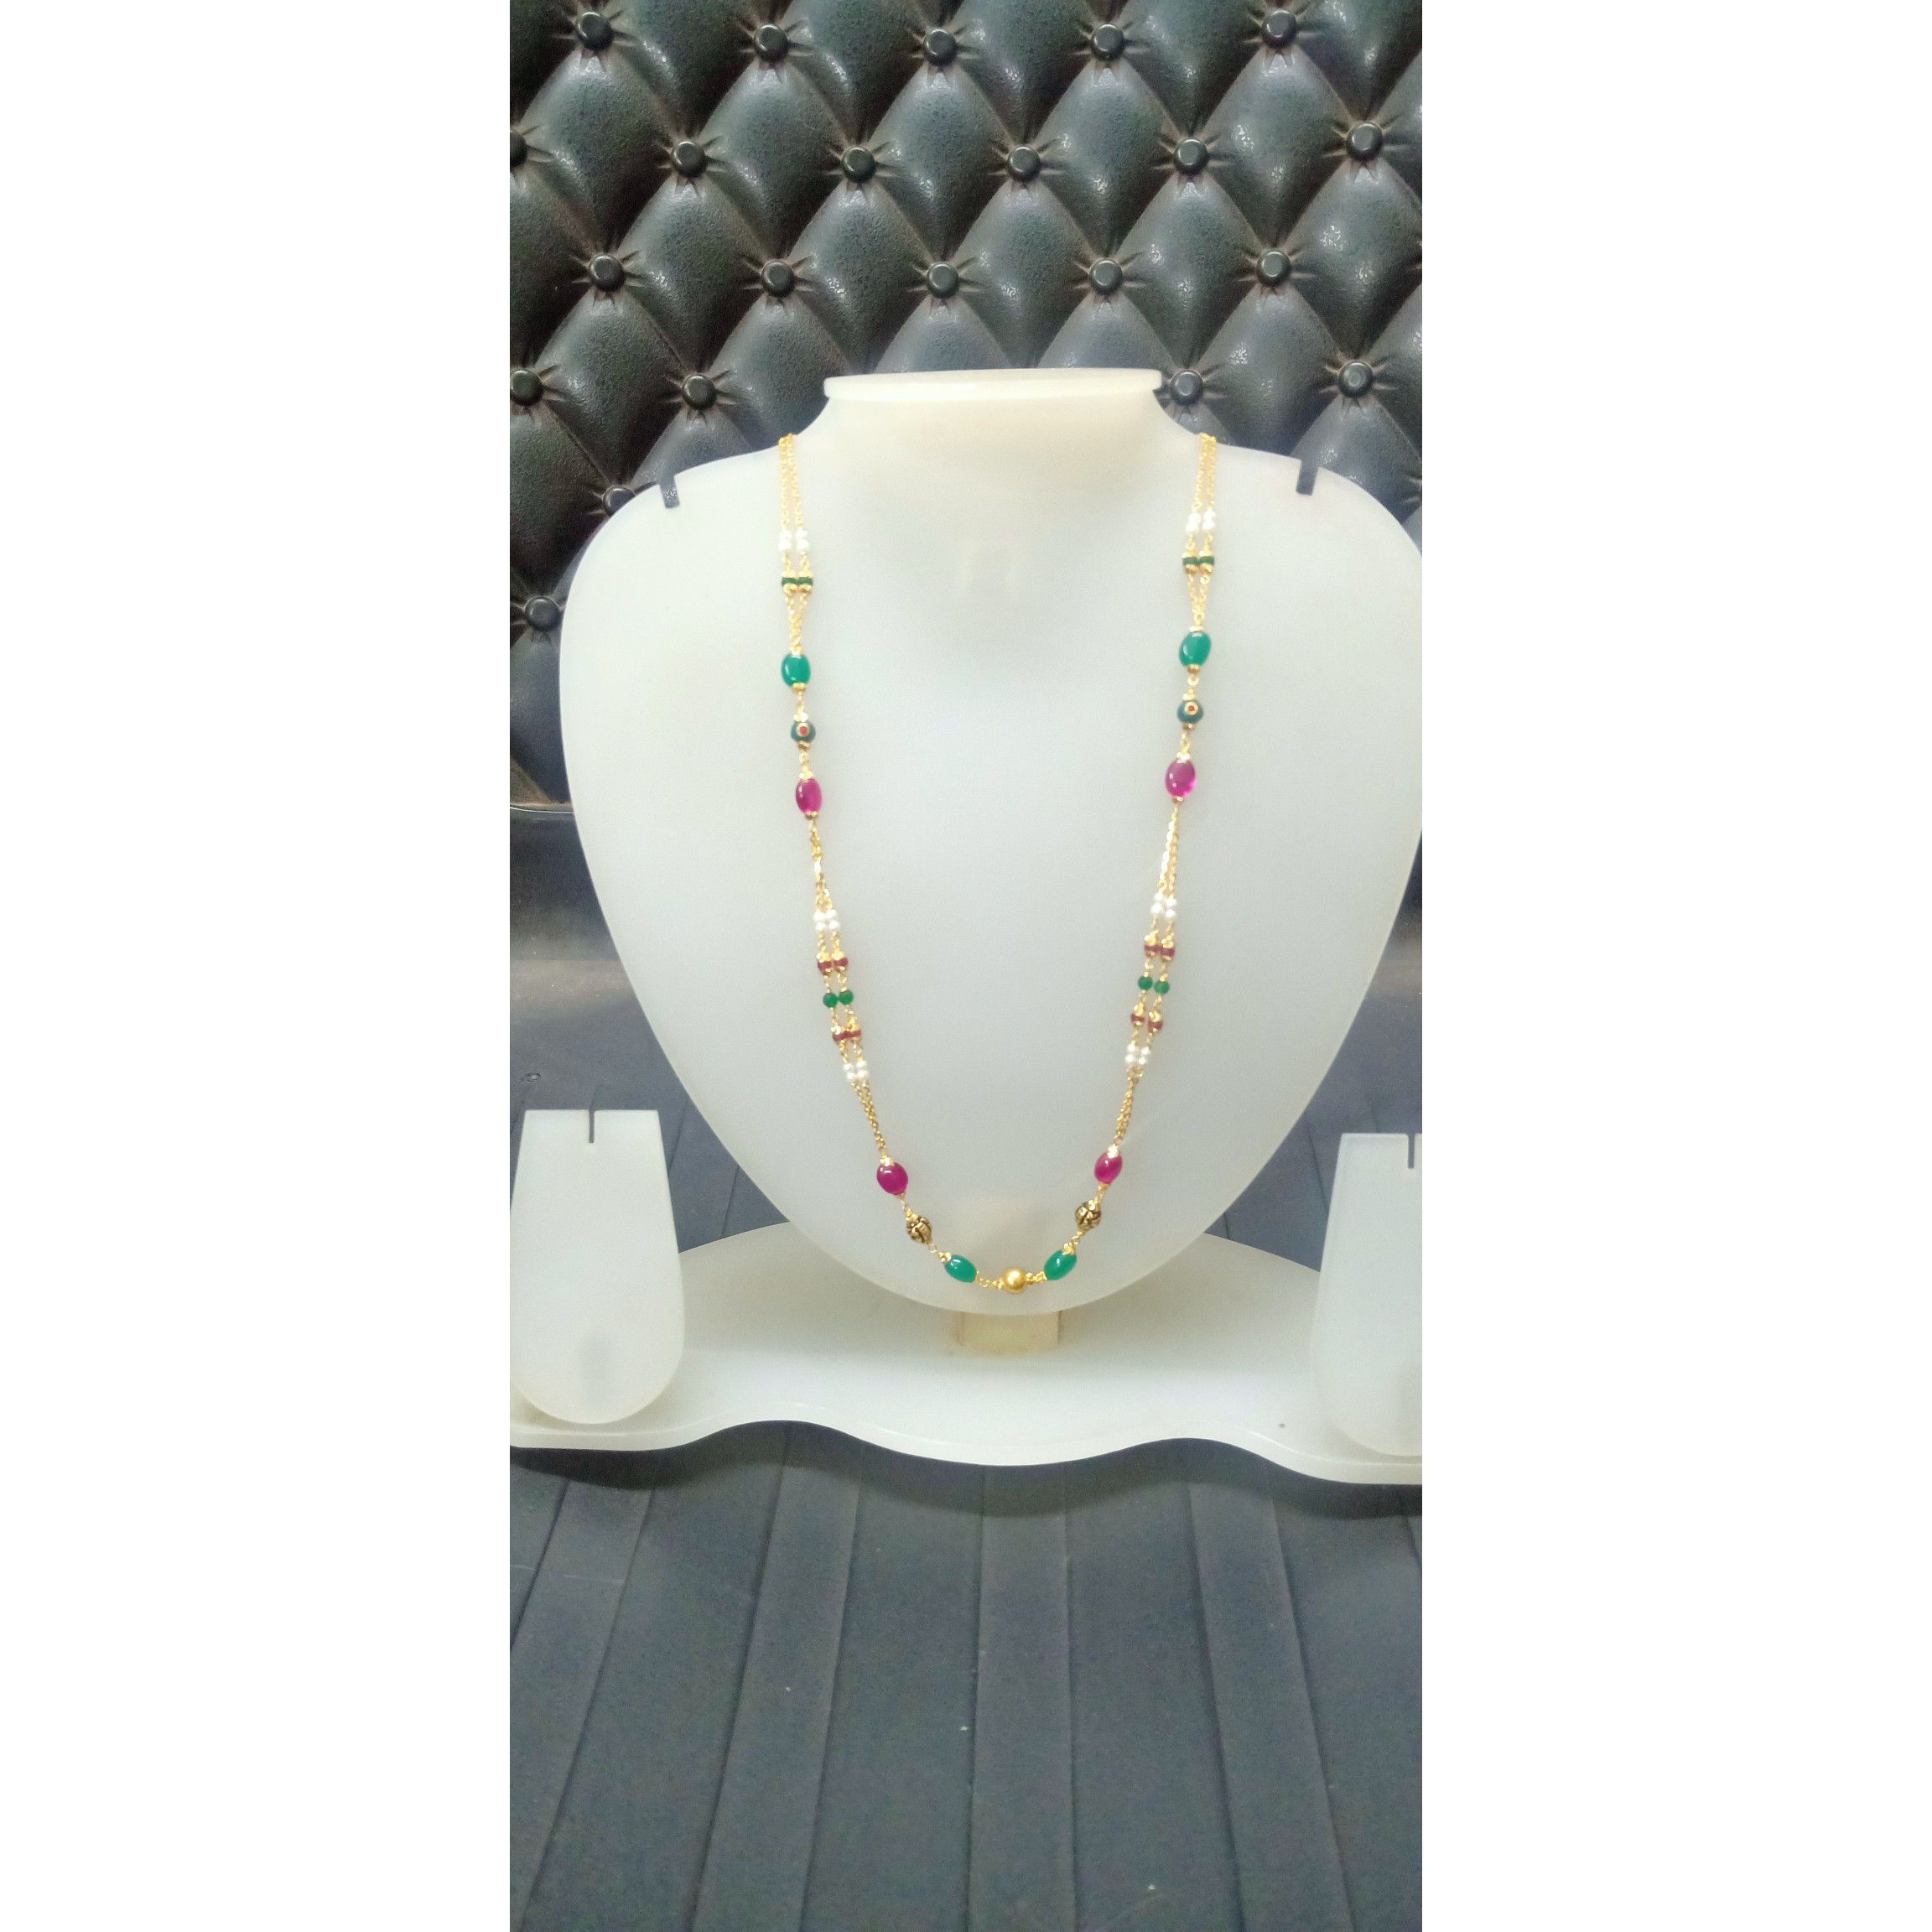 22 Ct Delicious Fancy Mala